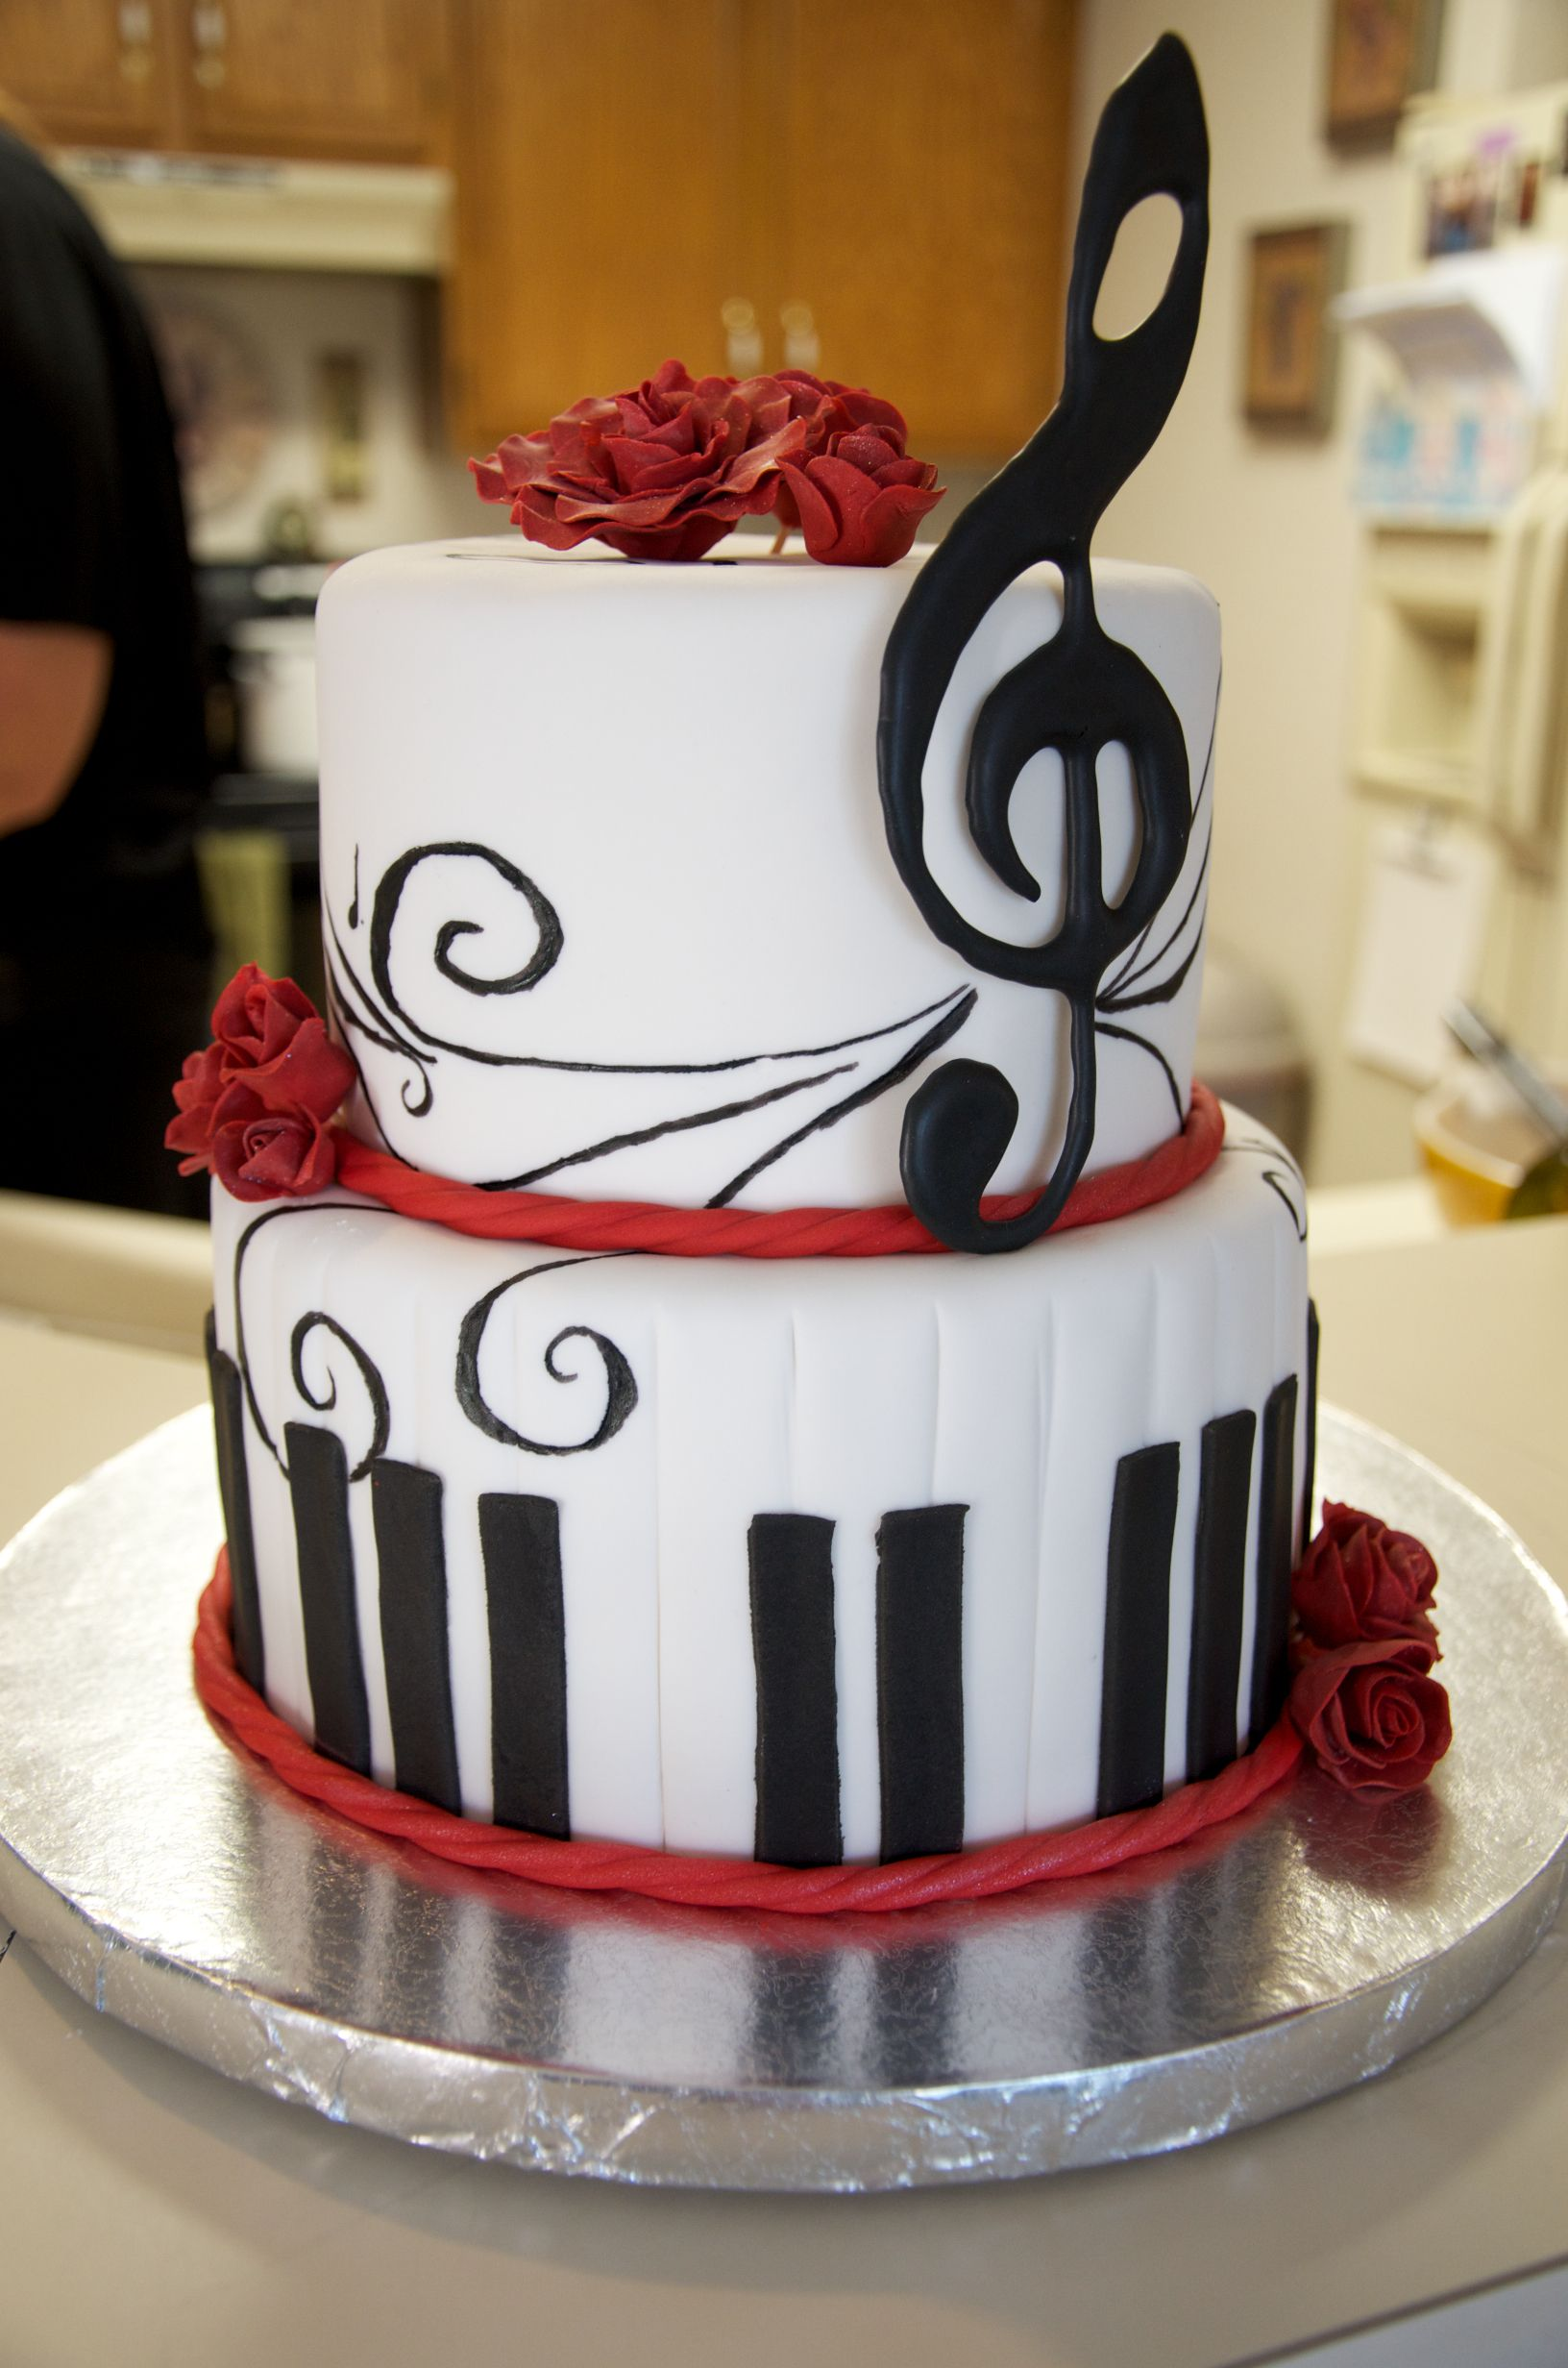 Music red white and black birthday cake Handmade piano keys treble